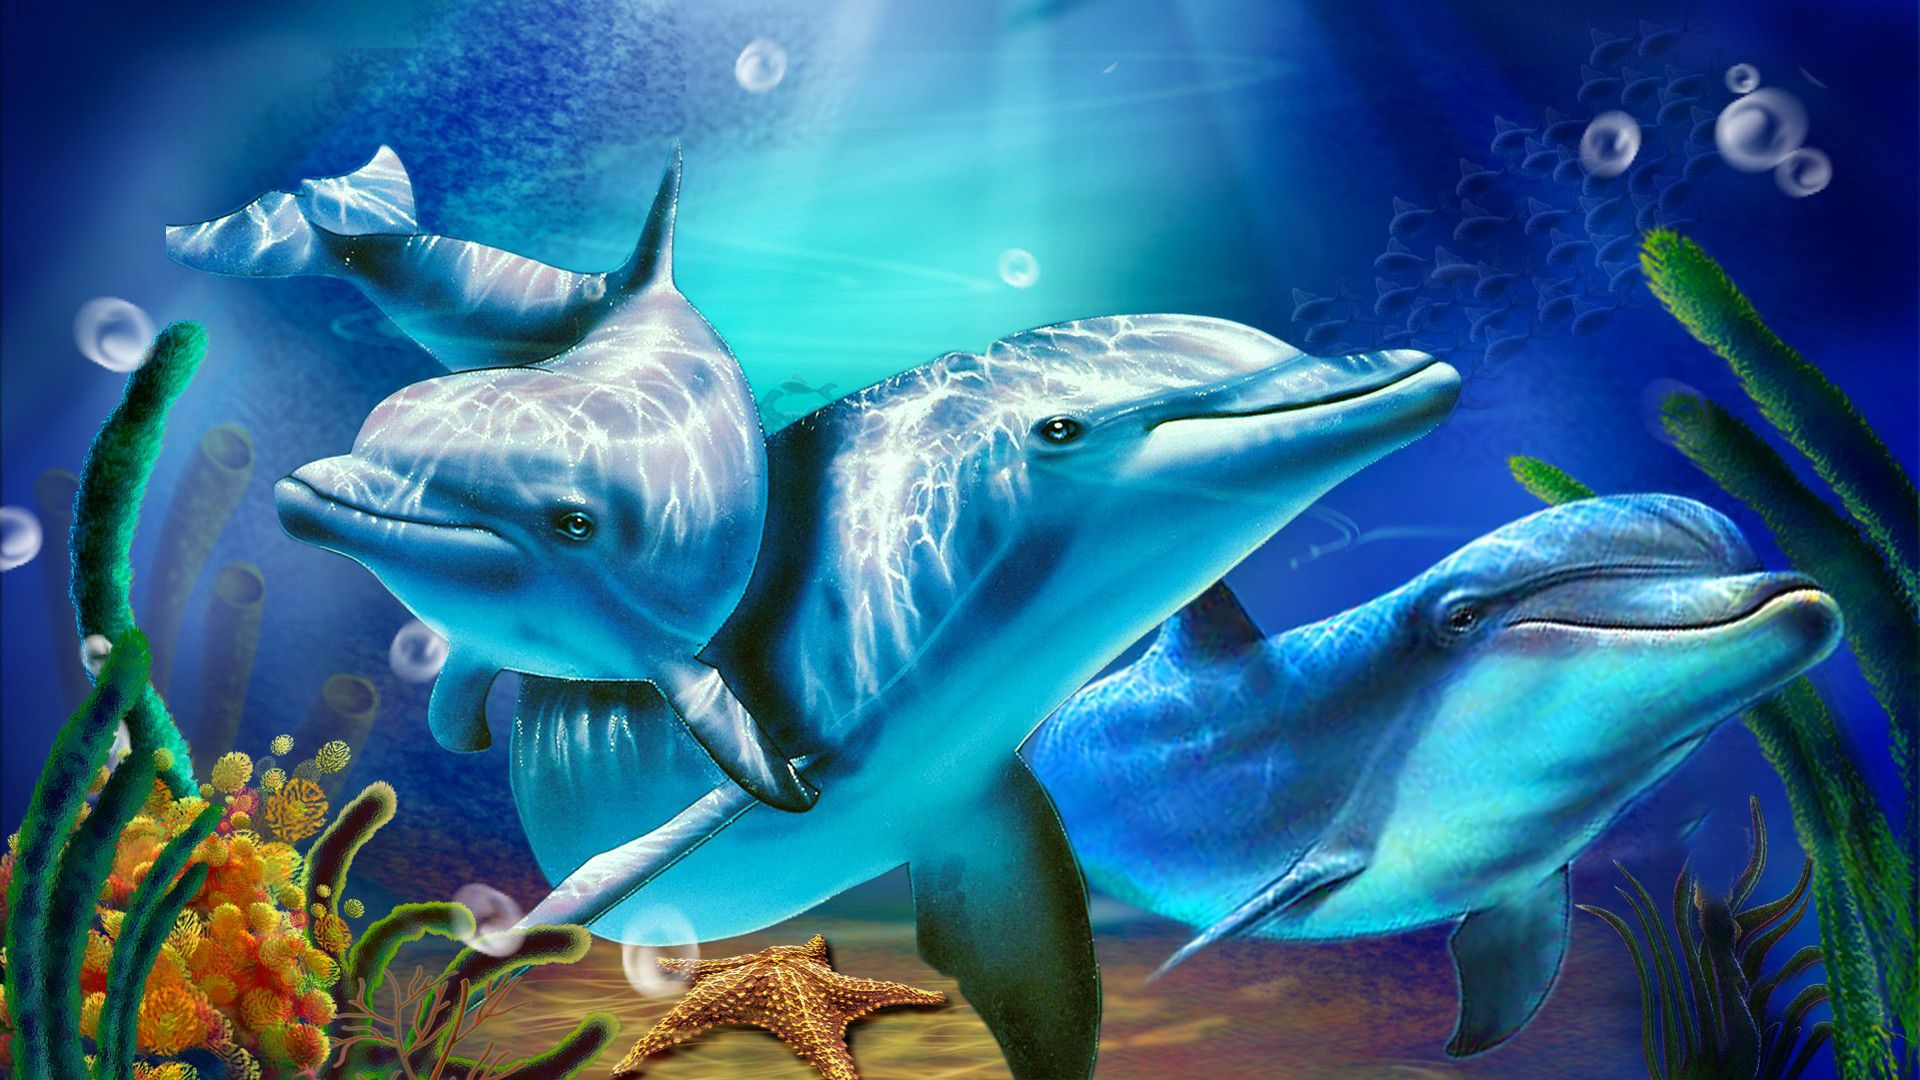 Dolphin Animated Wallpaper Dolphins Animal Dolphin Hd Underwater Wallpaper